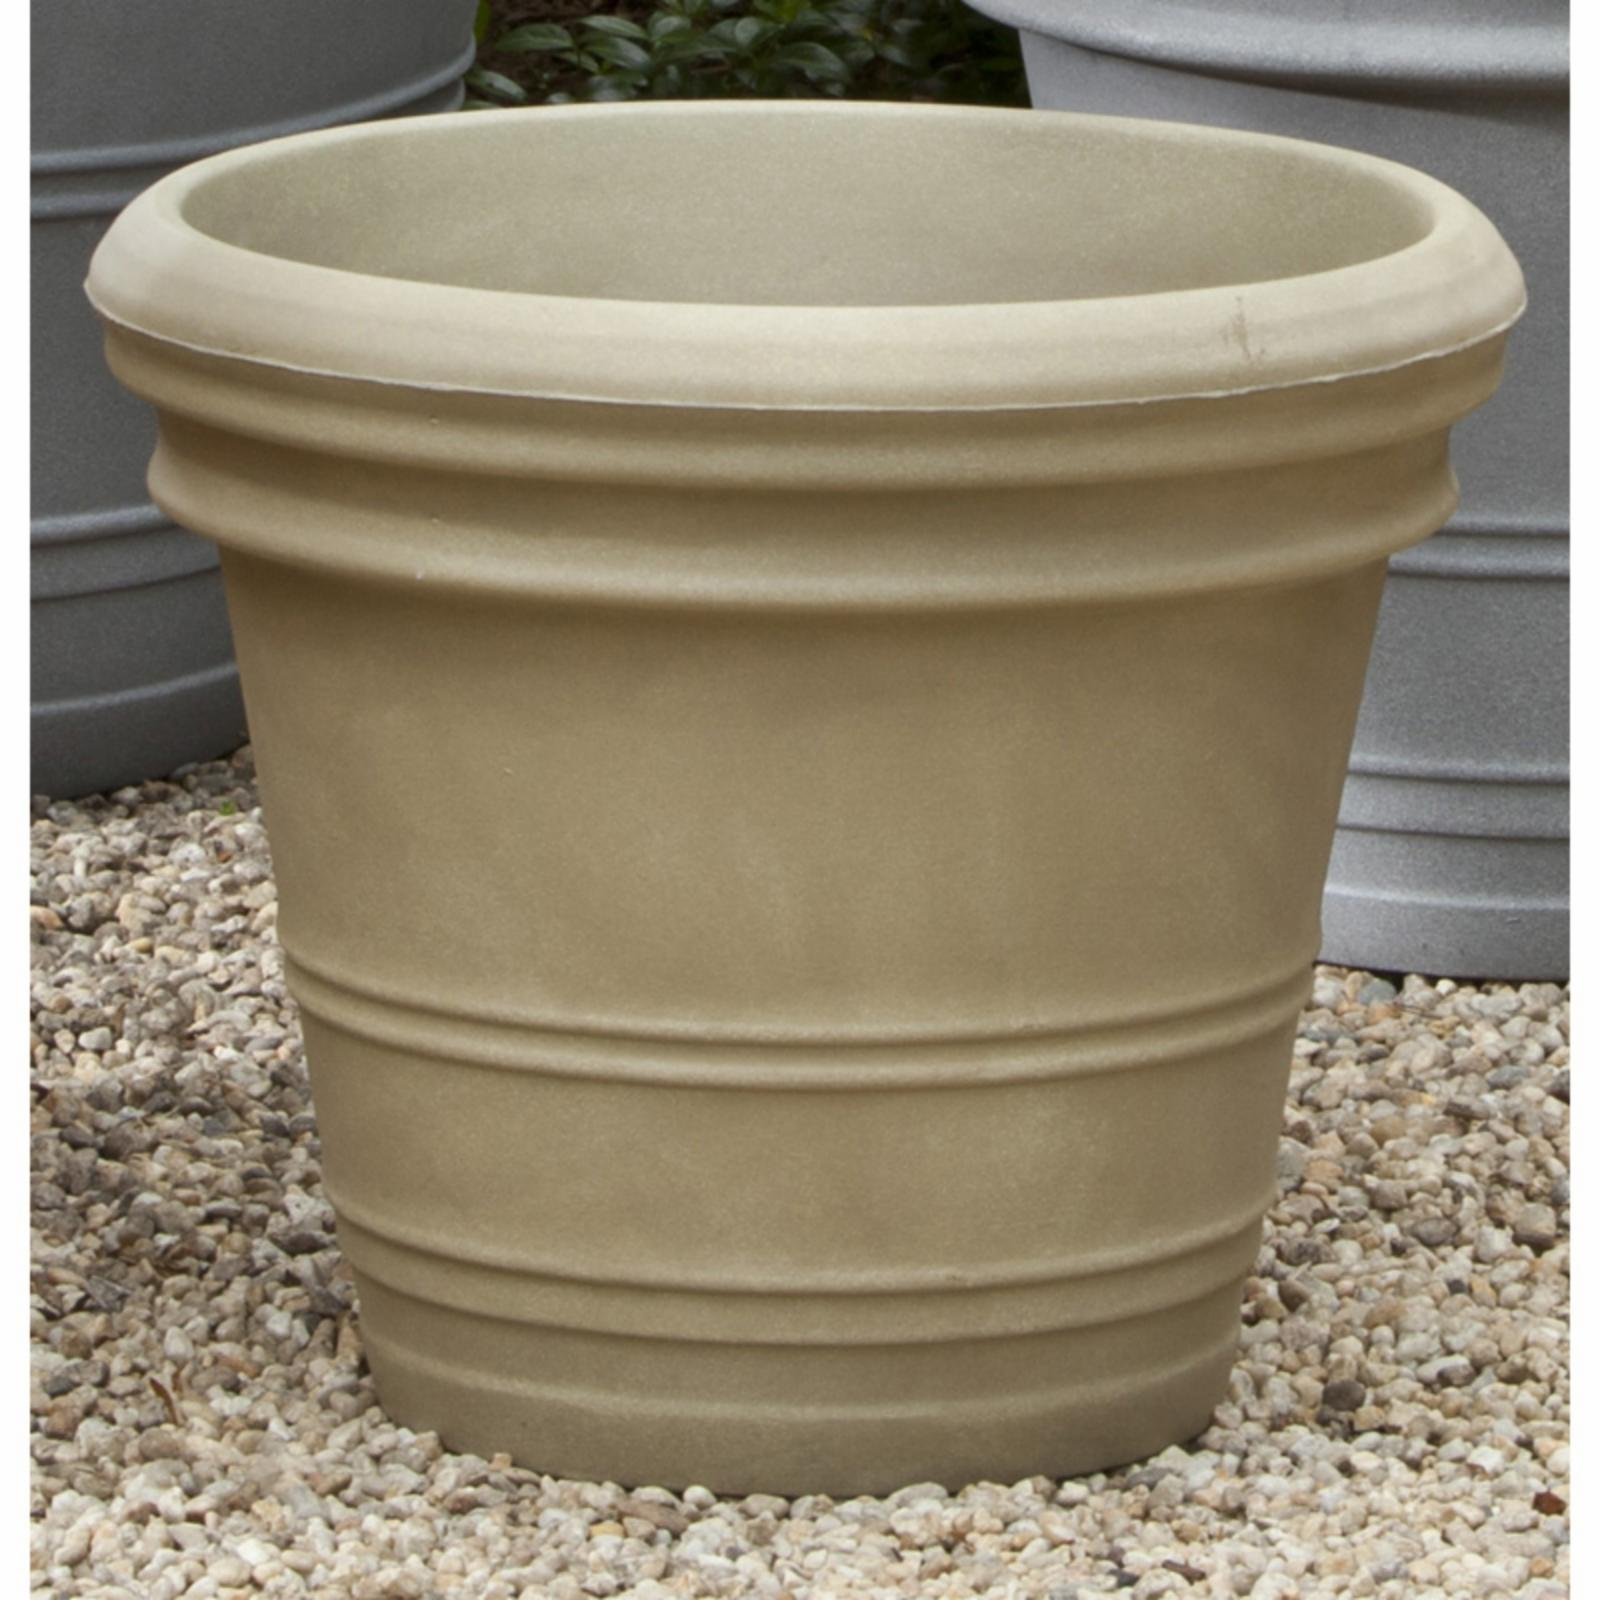 Campania International Double Rolled Rim Planter